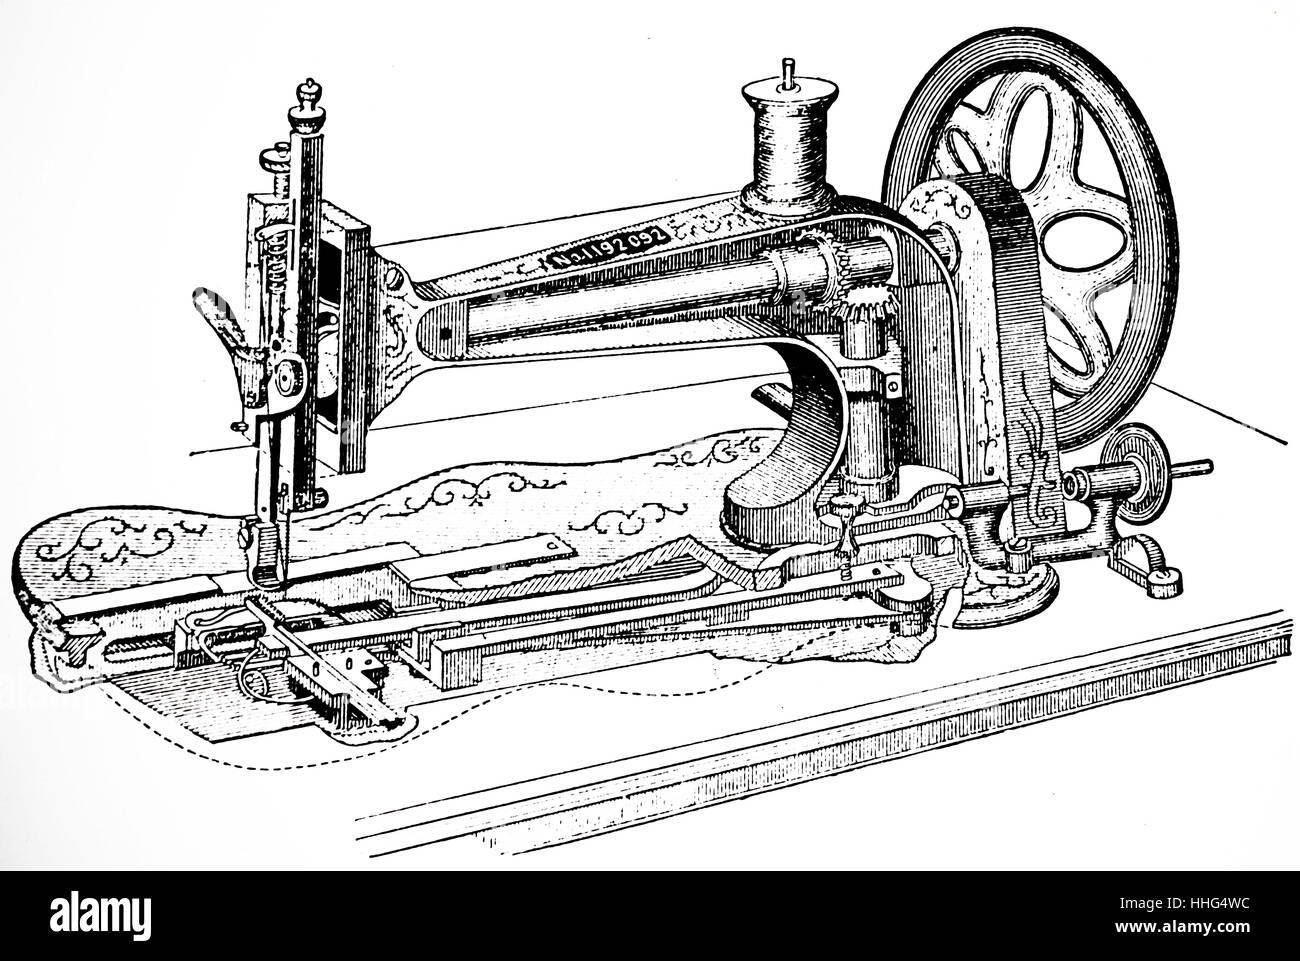 Singer Sewing Machine Black And White Stock Photos Images Alamy Diagram Image